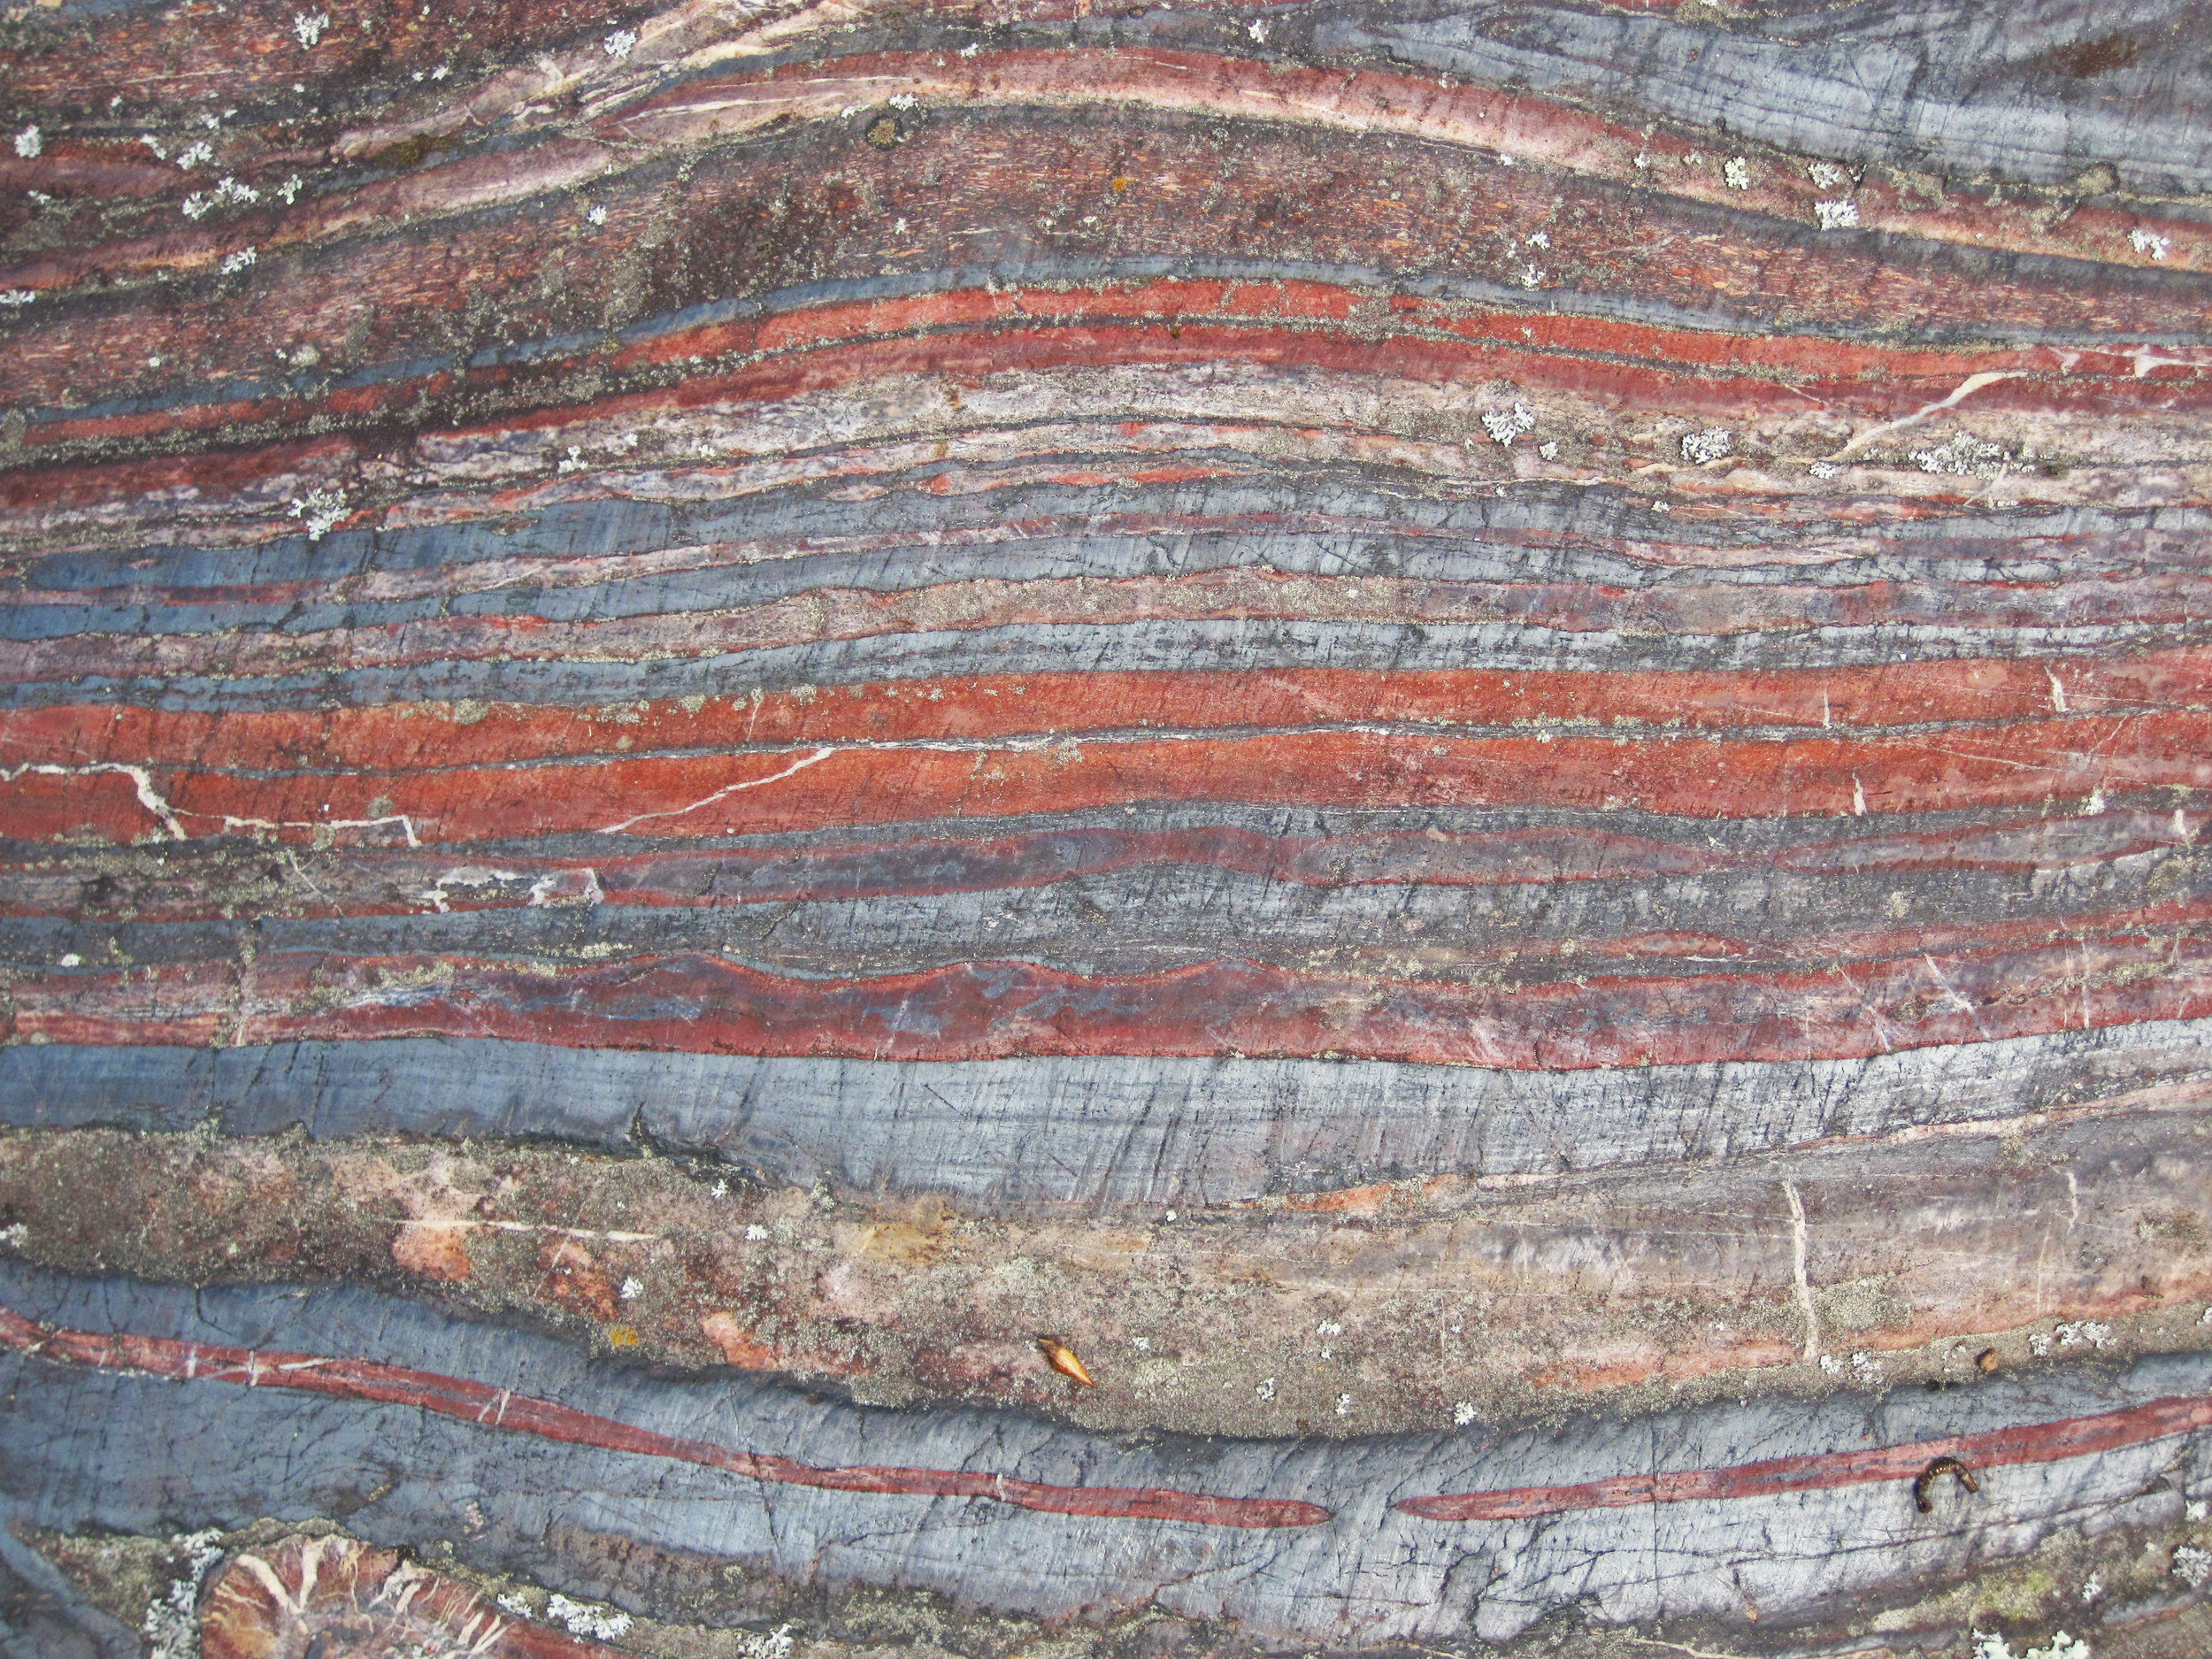 Banded Iron Formation. The whole story of life is in its layers.  Image: Wikimedia Commons